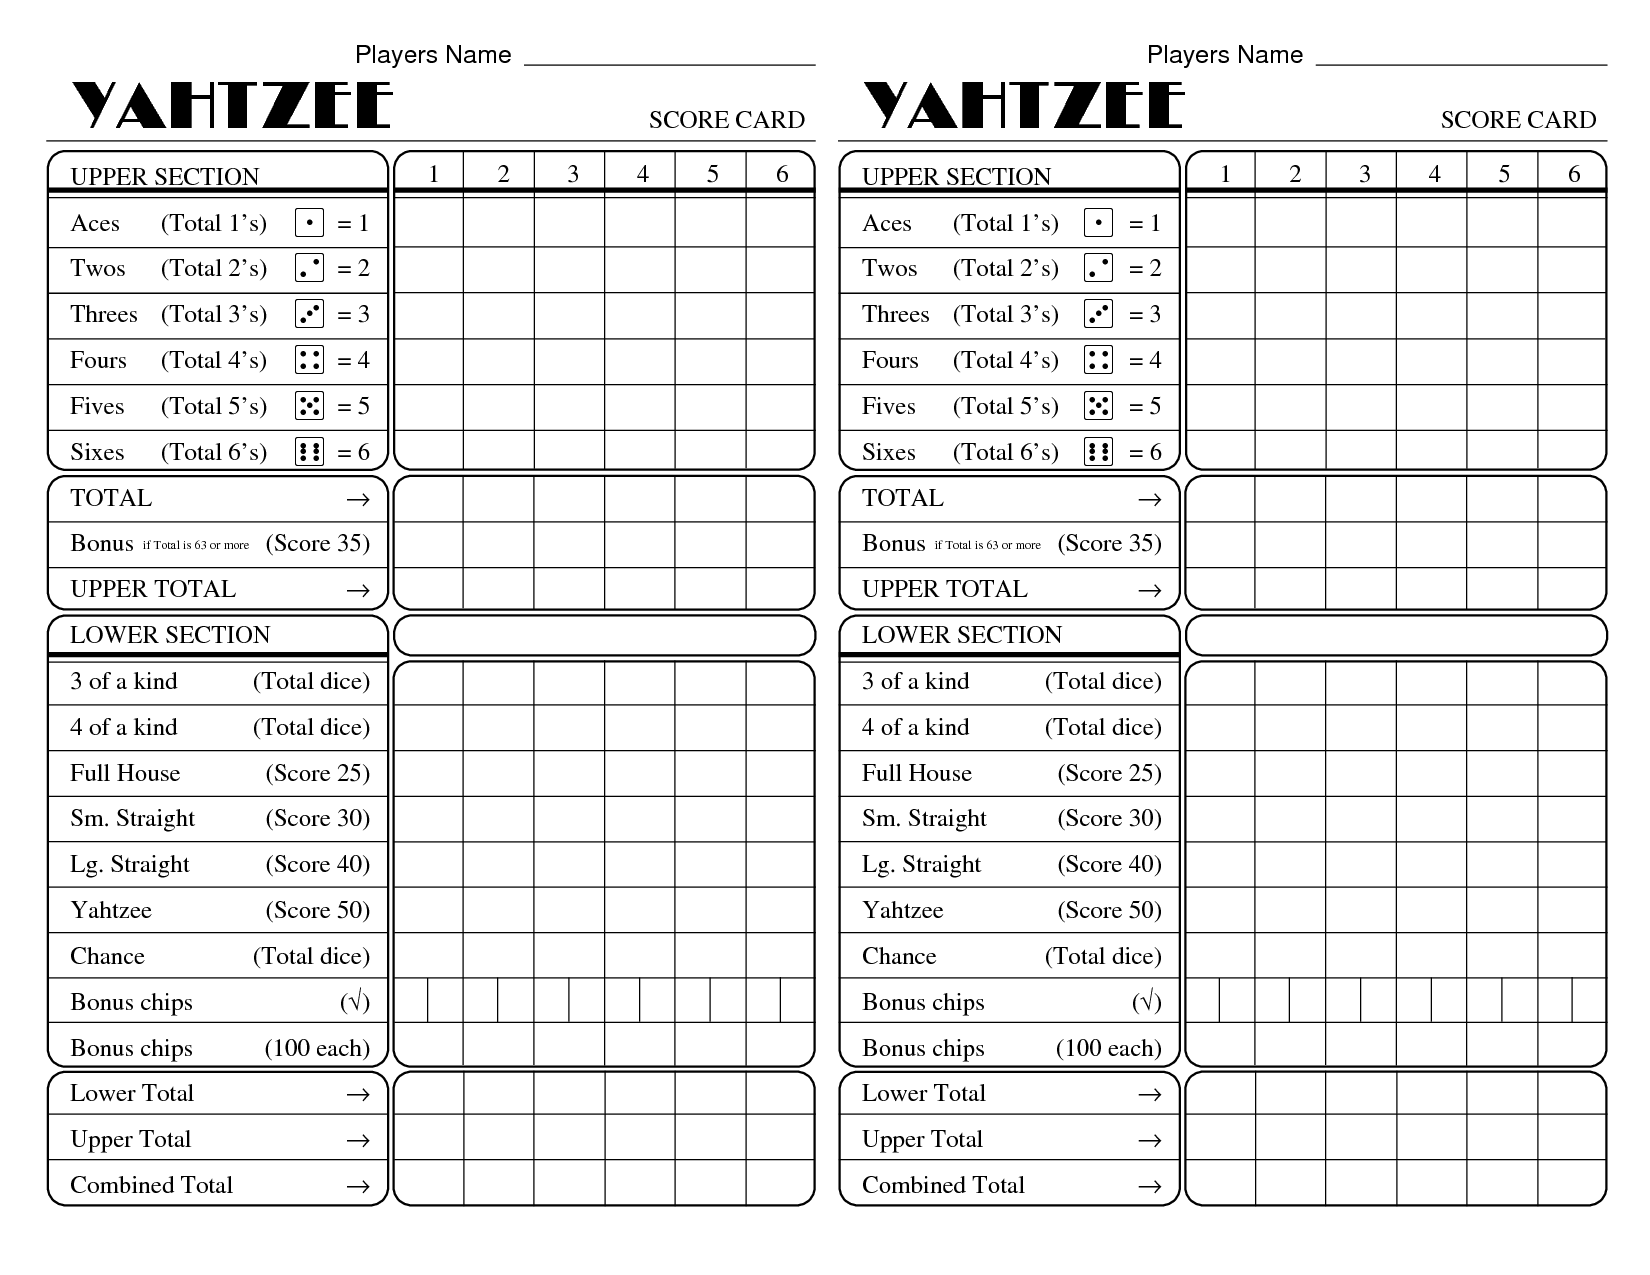 photograph regarding Printable Yahtzee Score Sheets 2 Per Page identify yatzee printable rating sheets yahtzee ranking card All for